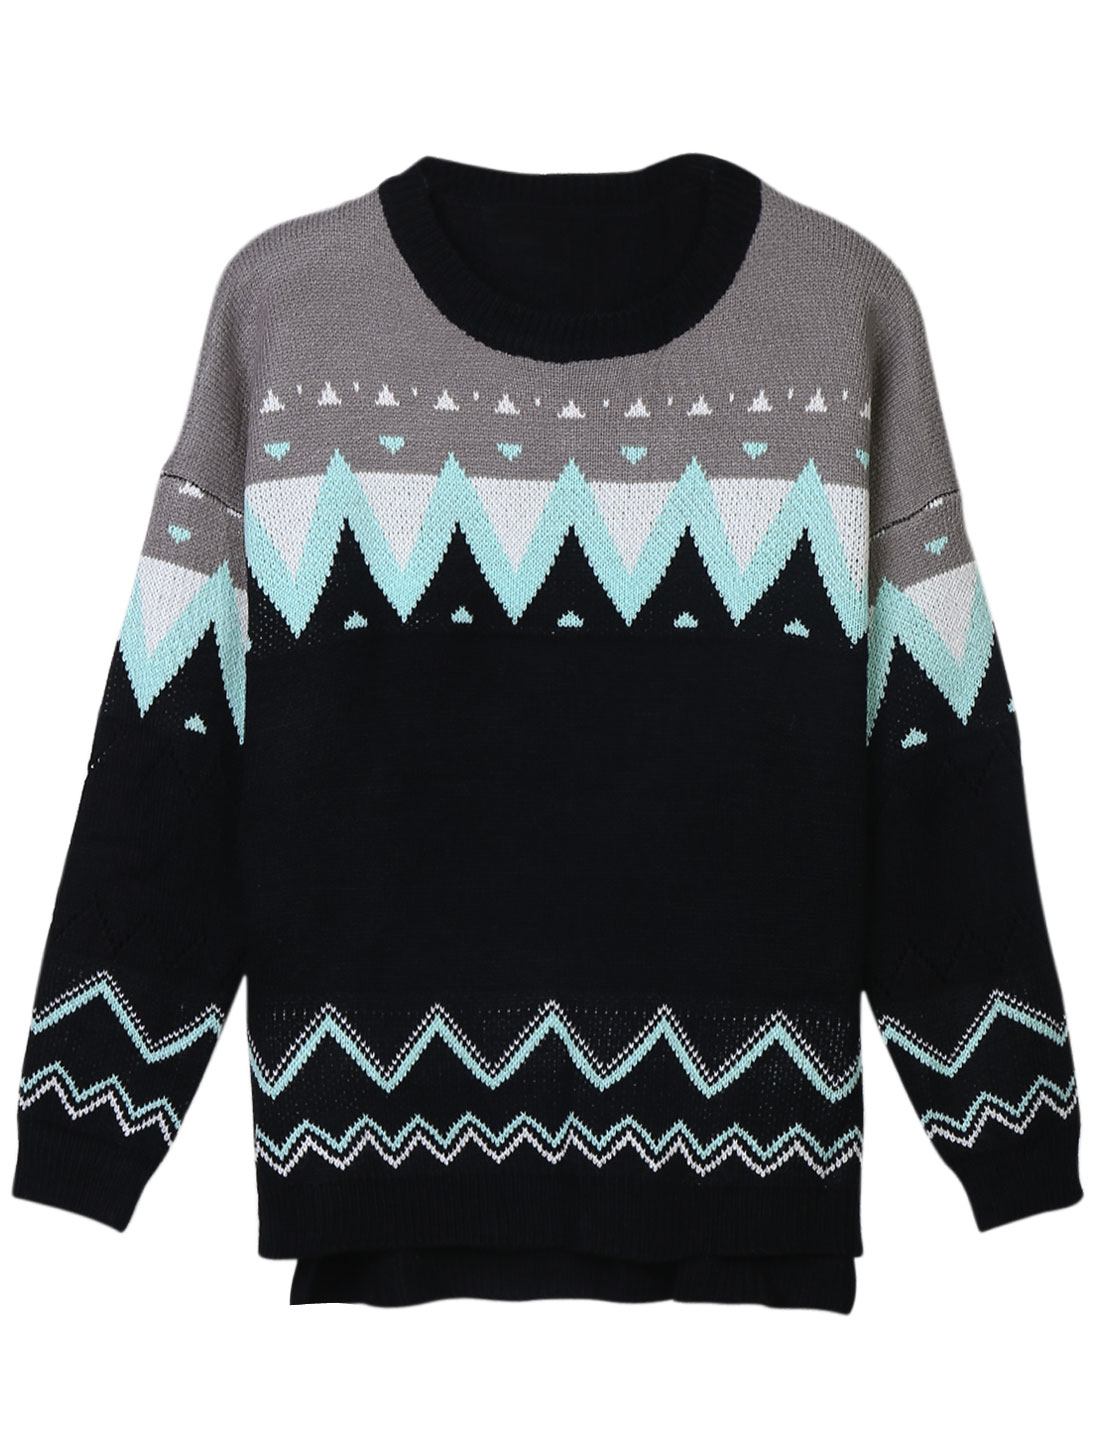 Women Round Neck Long Sleeves Zig-Zag Pattern Casual Knitted Top Black S